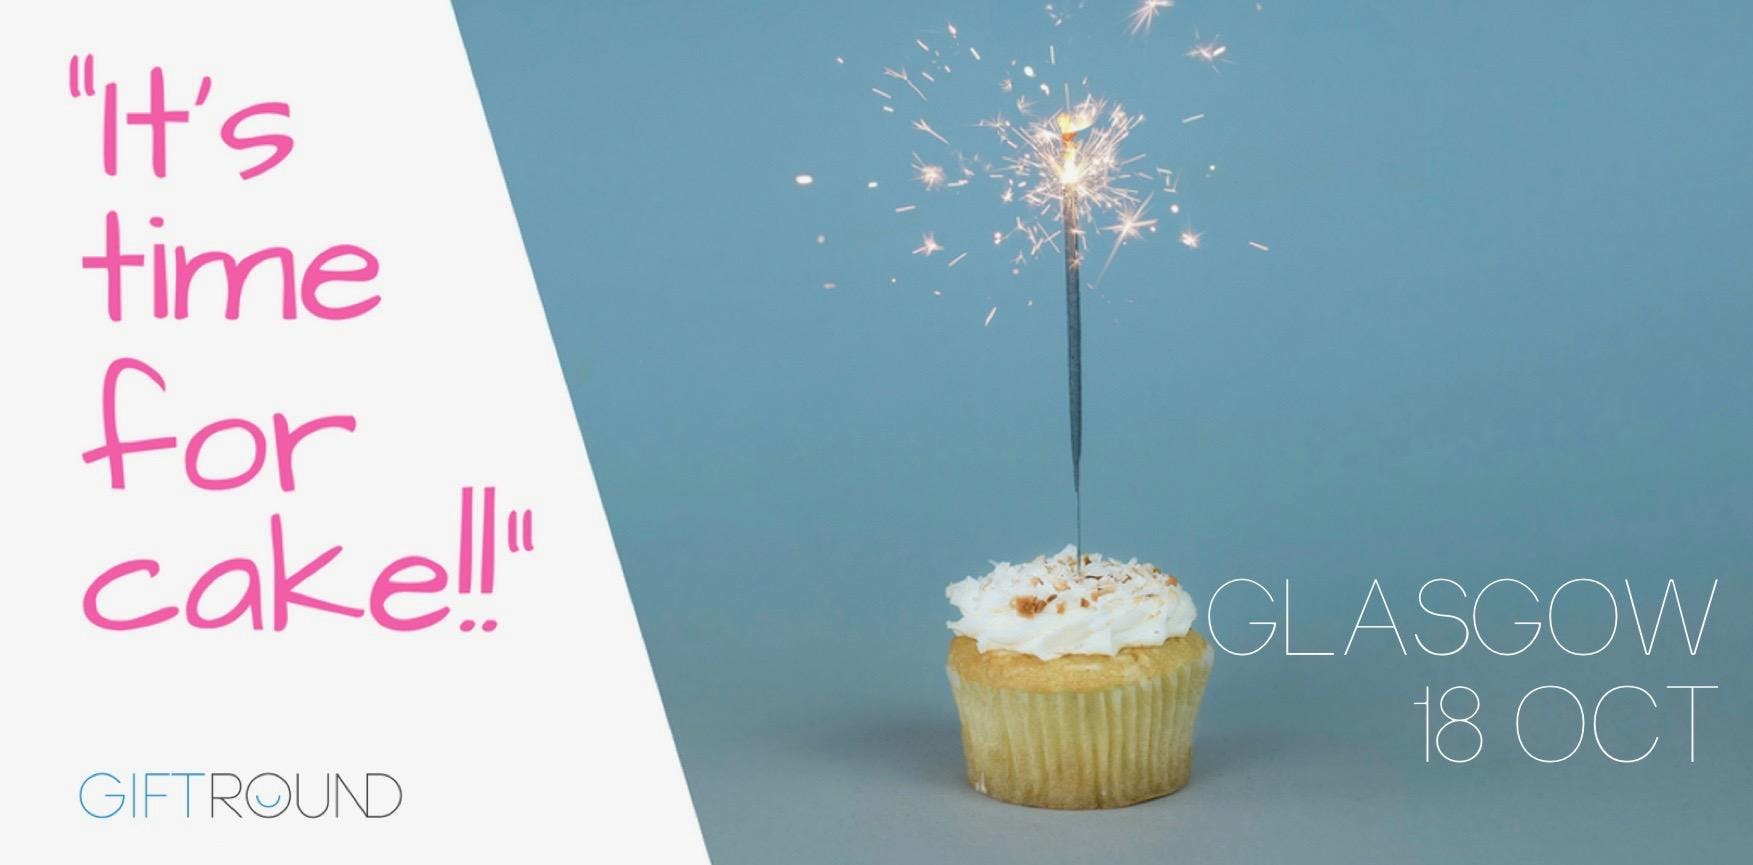 Introducing GiftRound with Prosecco & Cake